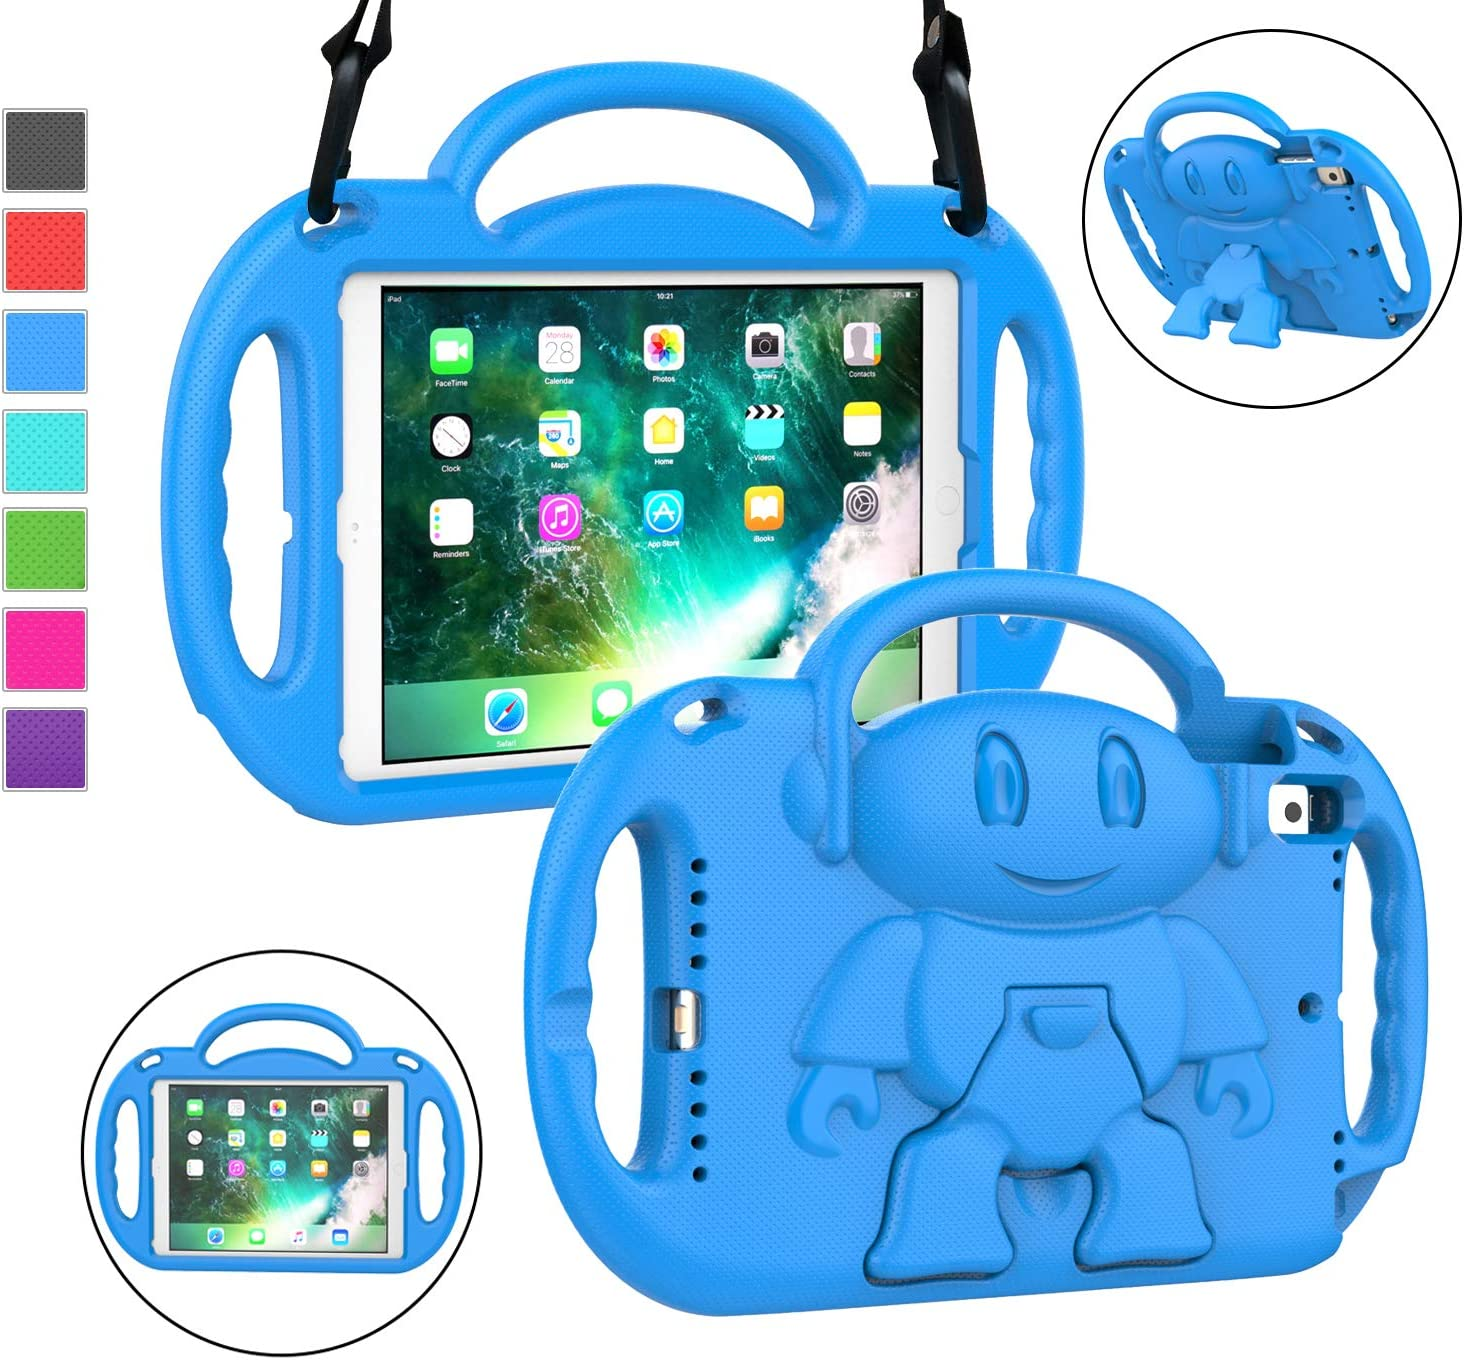 LTROP iPad 6th Generation Case, iPad Case 2018, iPad 9.7-Inch Case - Light Weight Shock Proof Convertible Handle Stand Kids Case for 9.7 inch Apple iPad 5th & 6th Gen Model A1893 A1954 A1822 - Blue